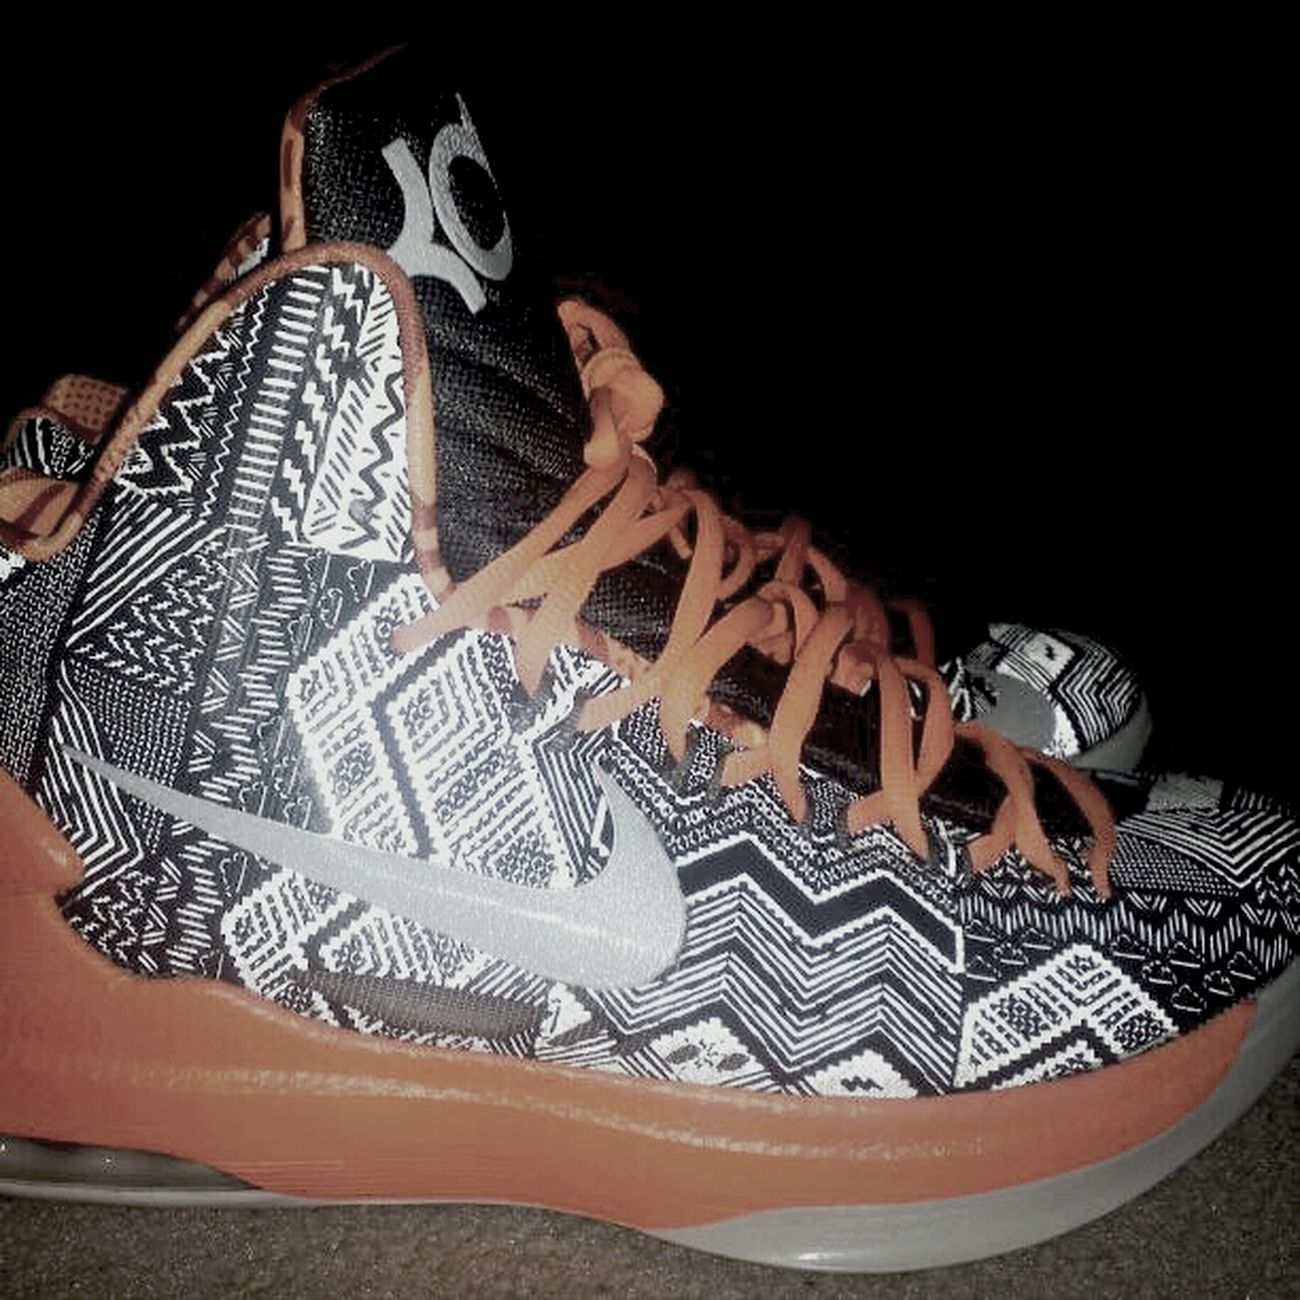 Just Copped Kd Black History Months